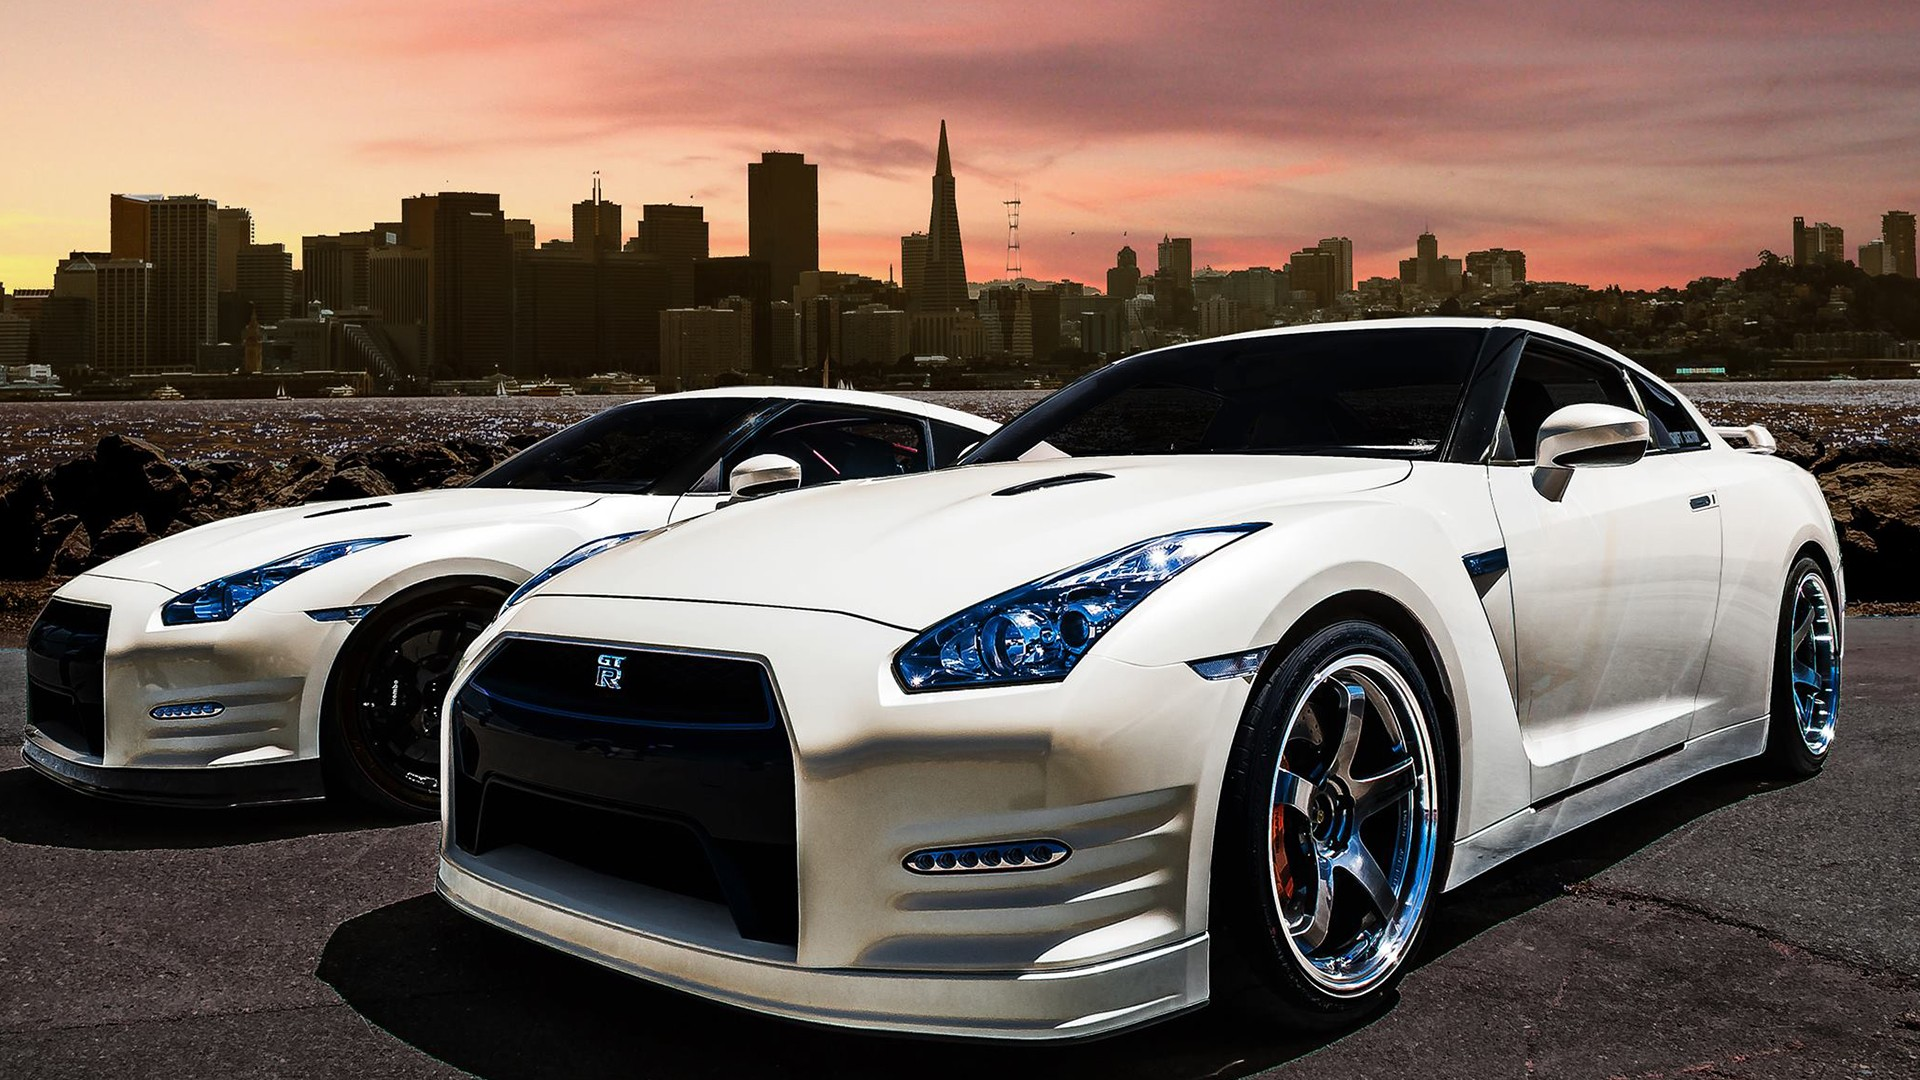 Nissan Skyline Tuning Supercar Supercars Wallpaper